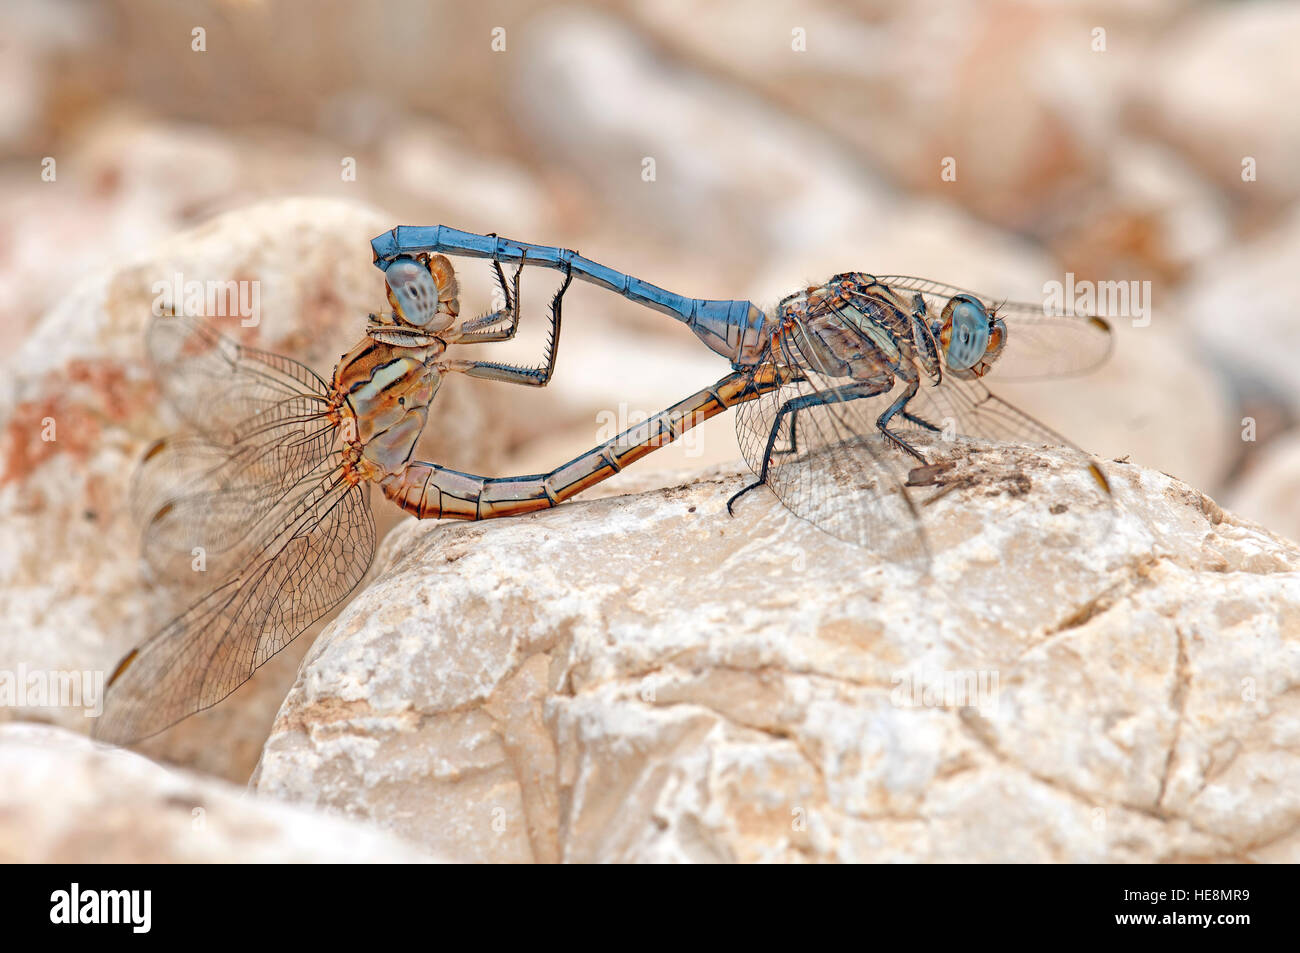 Dragonfly mating on a rock - Stock Image